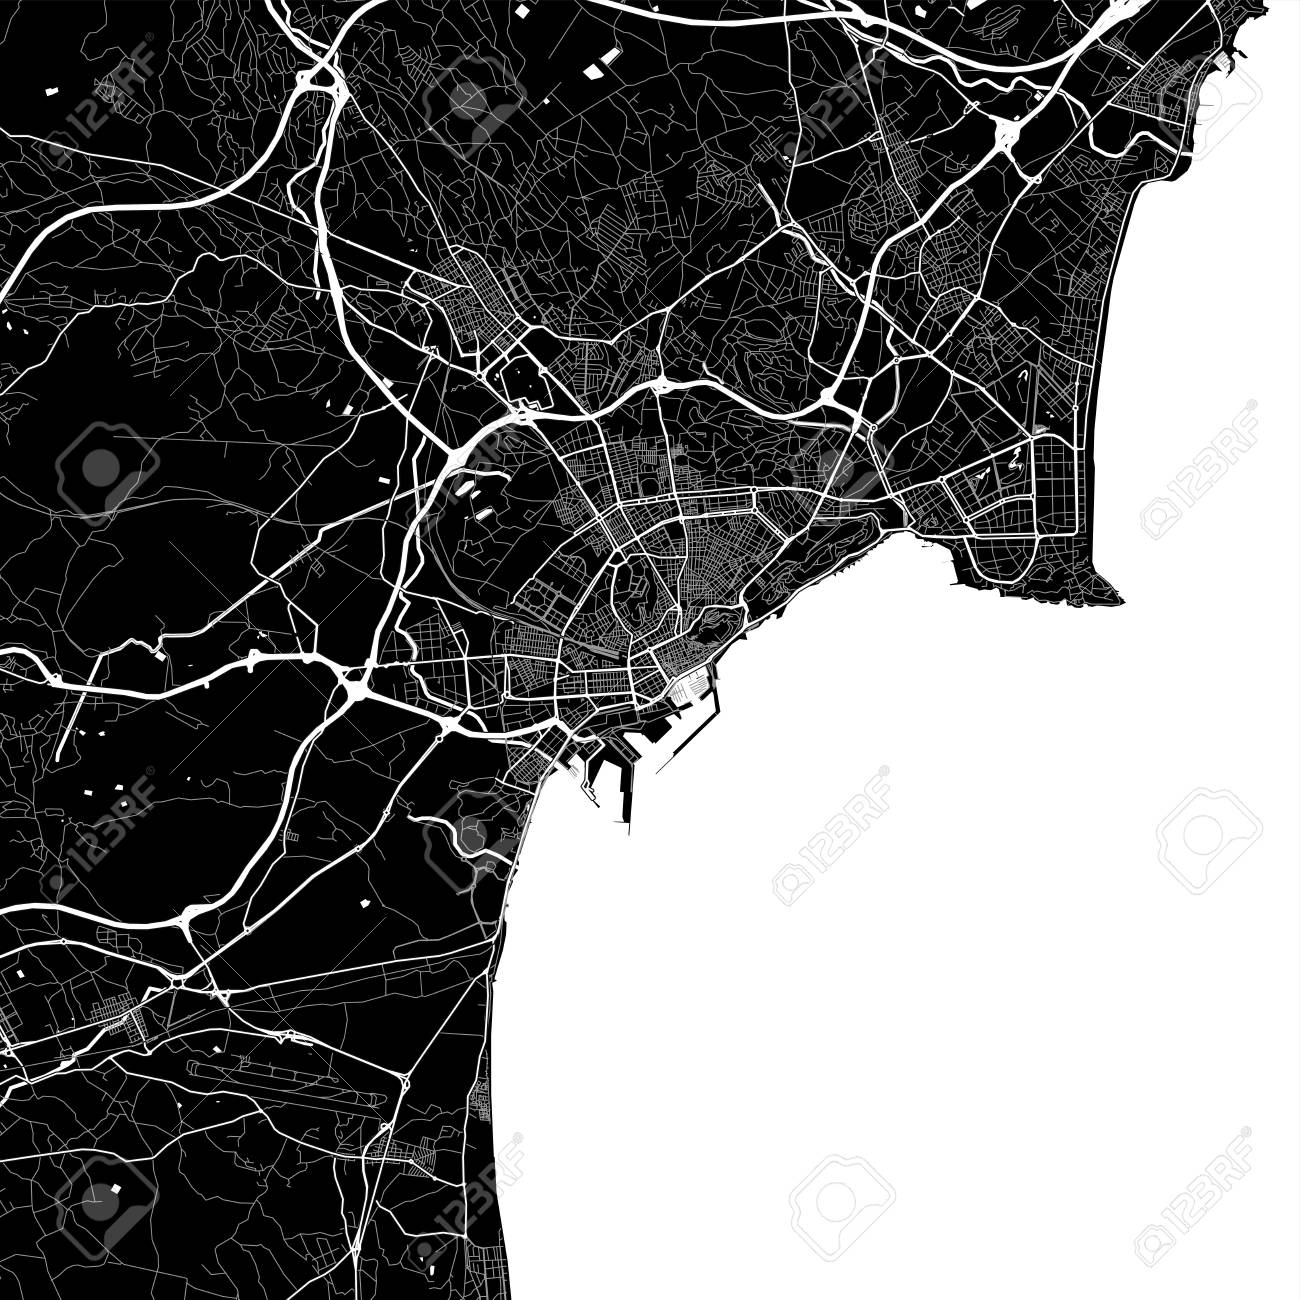 Map Of Spain Alicante Area.Area Map Of Alicante Spain Dark Background Version For Infographic